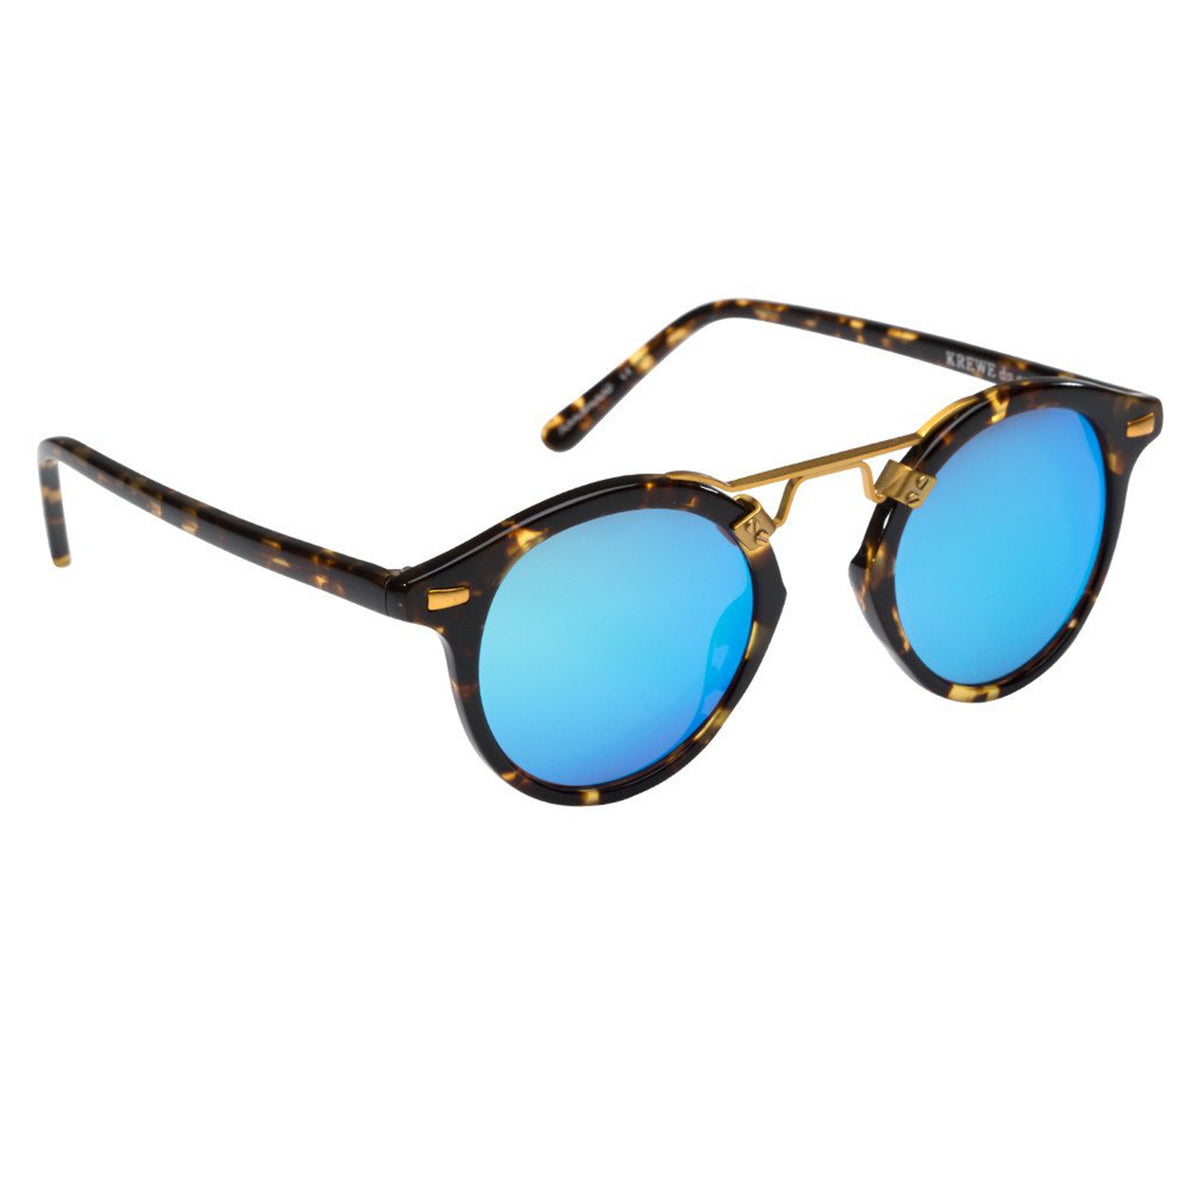 ST. LOUIS MIRRORED | Bengal Blue handcrafted acetate Sunglasses